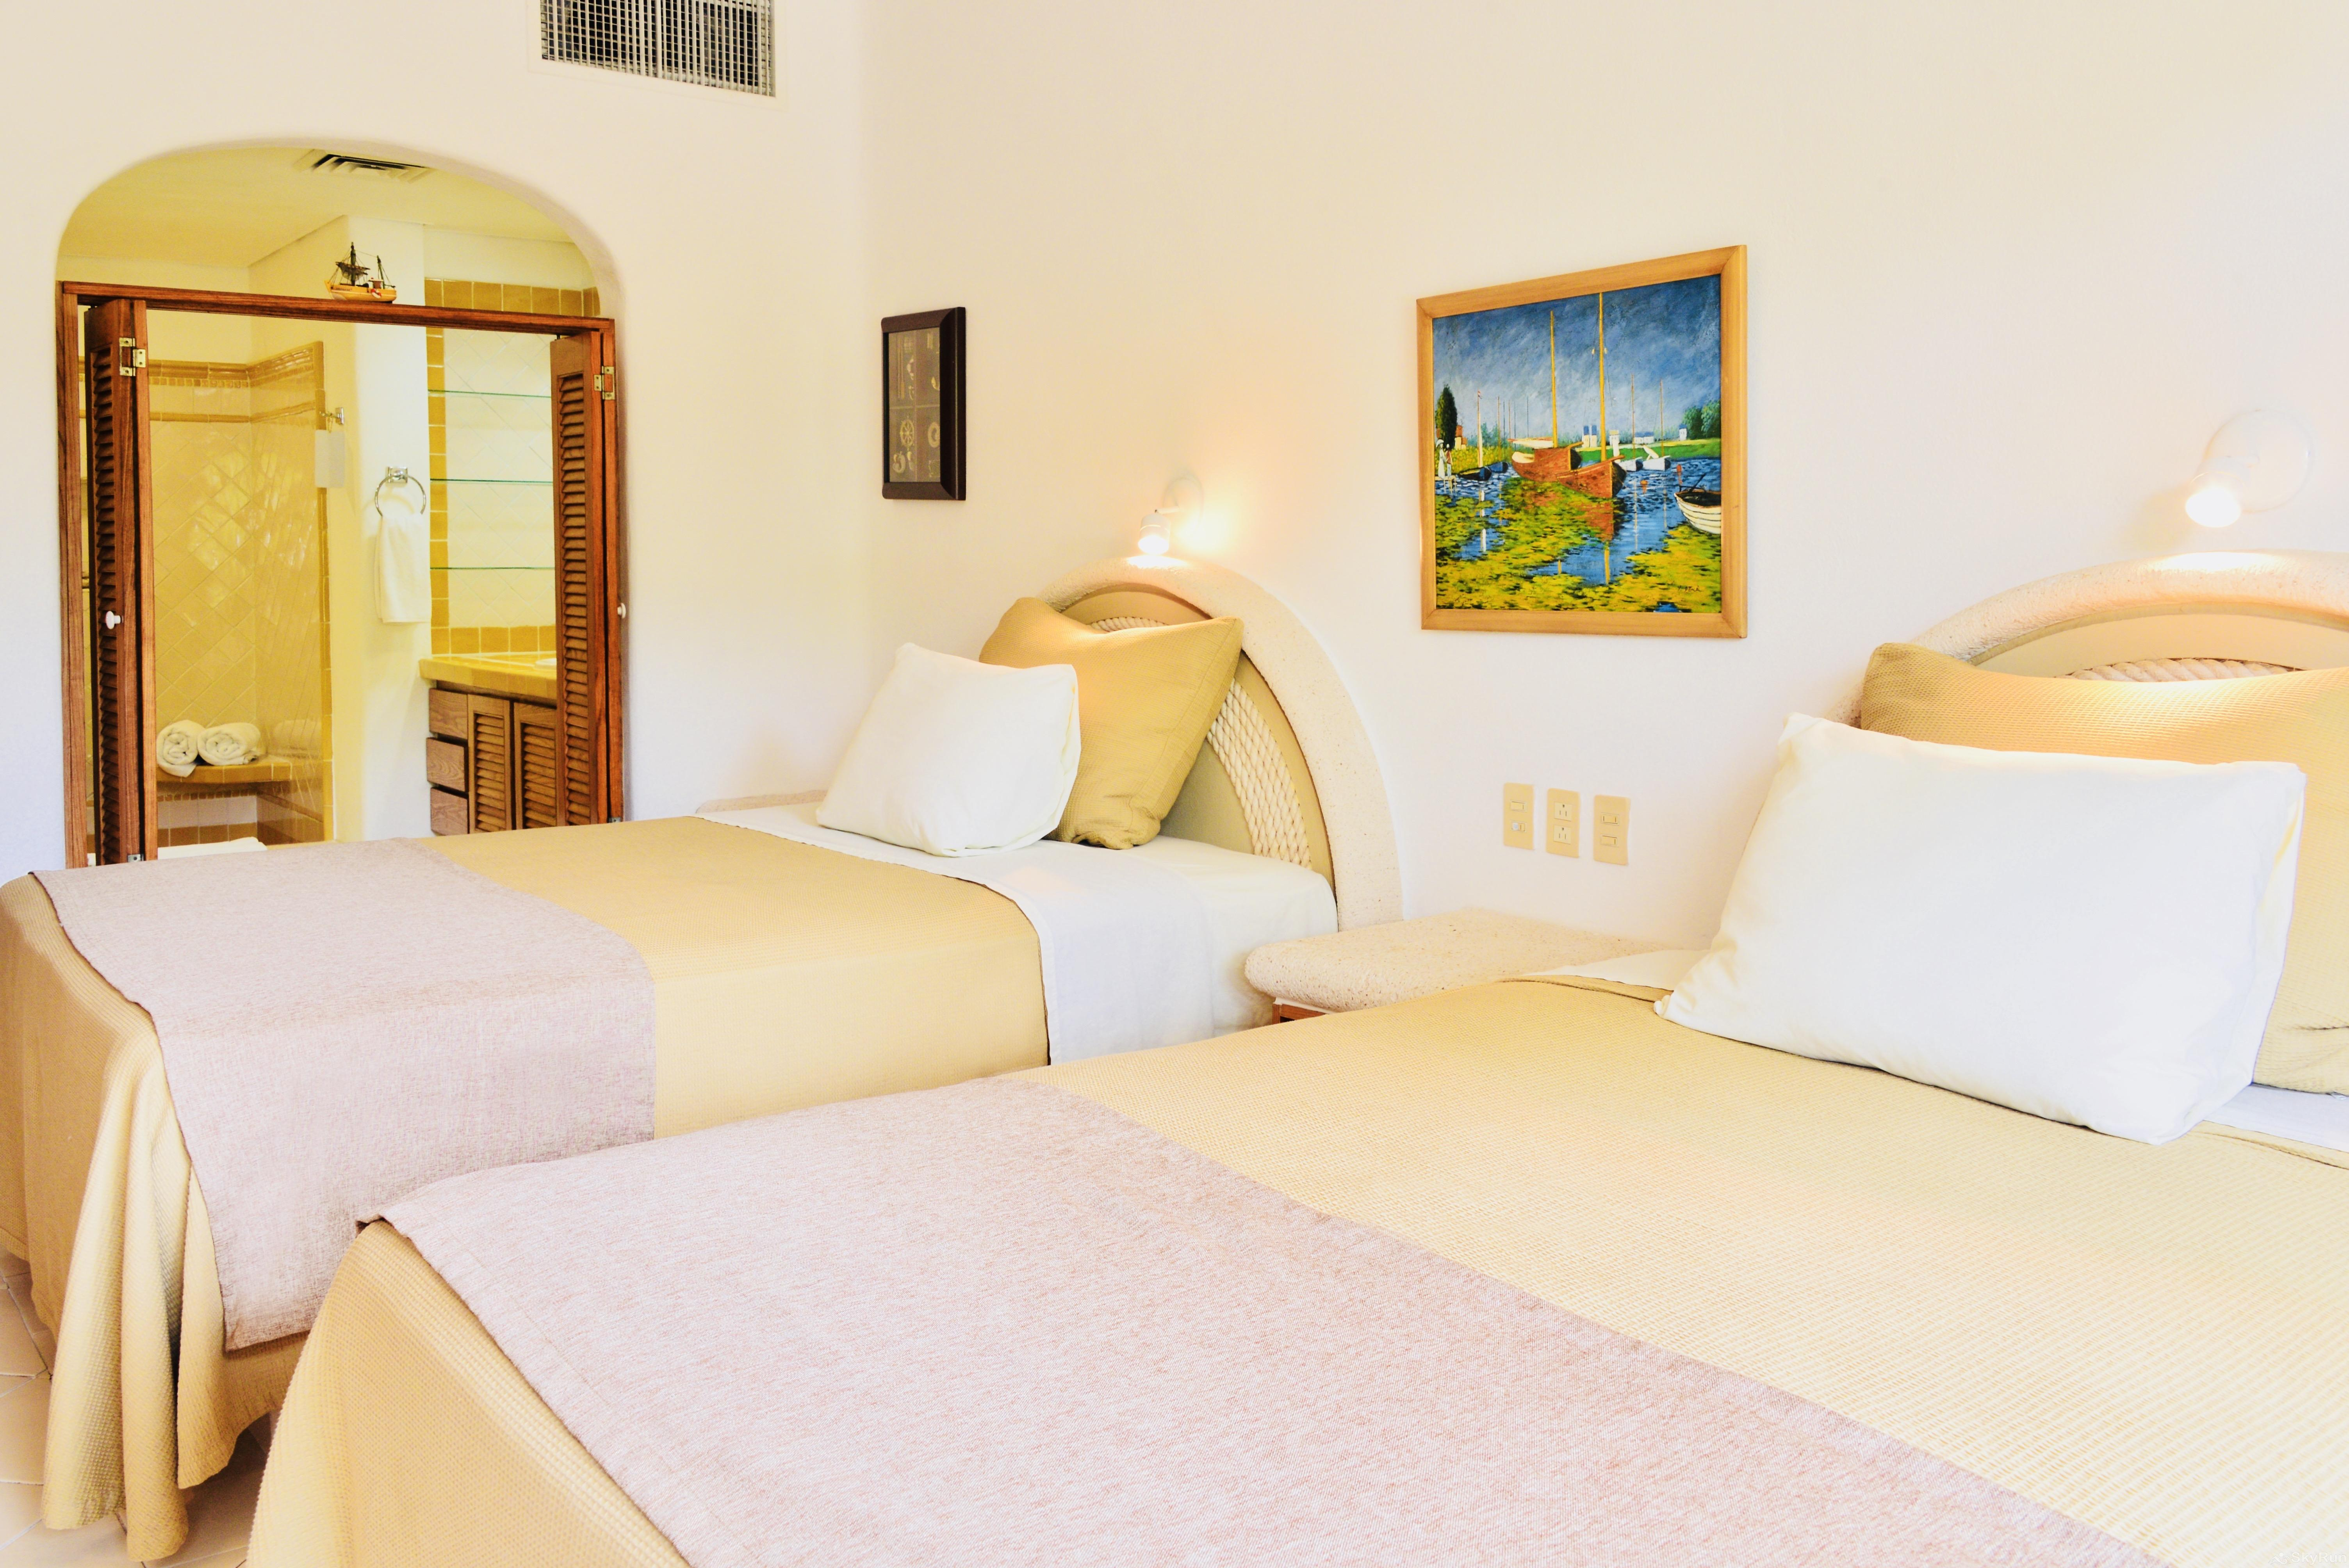 Beachfront  Villa 3 bedroom Tulum area Resort Style 2nd Bedroom 2 Queen Beds